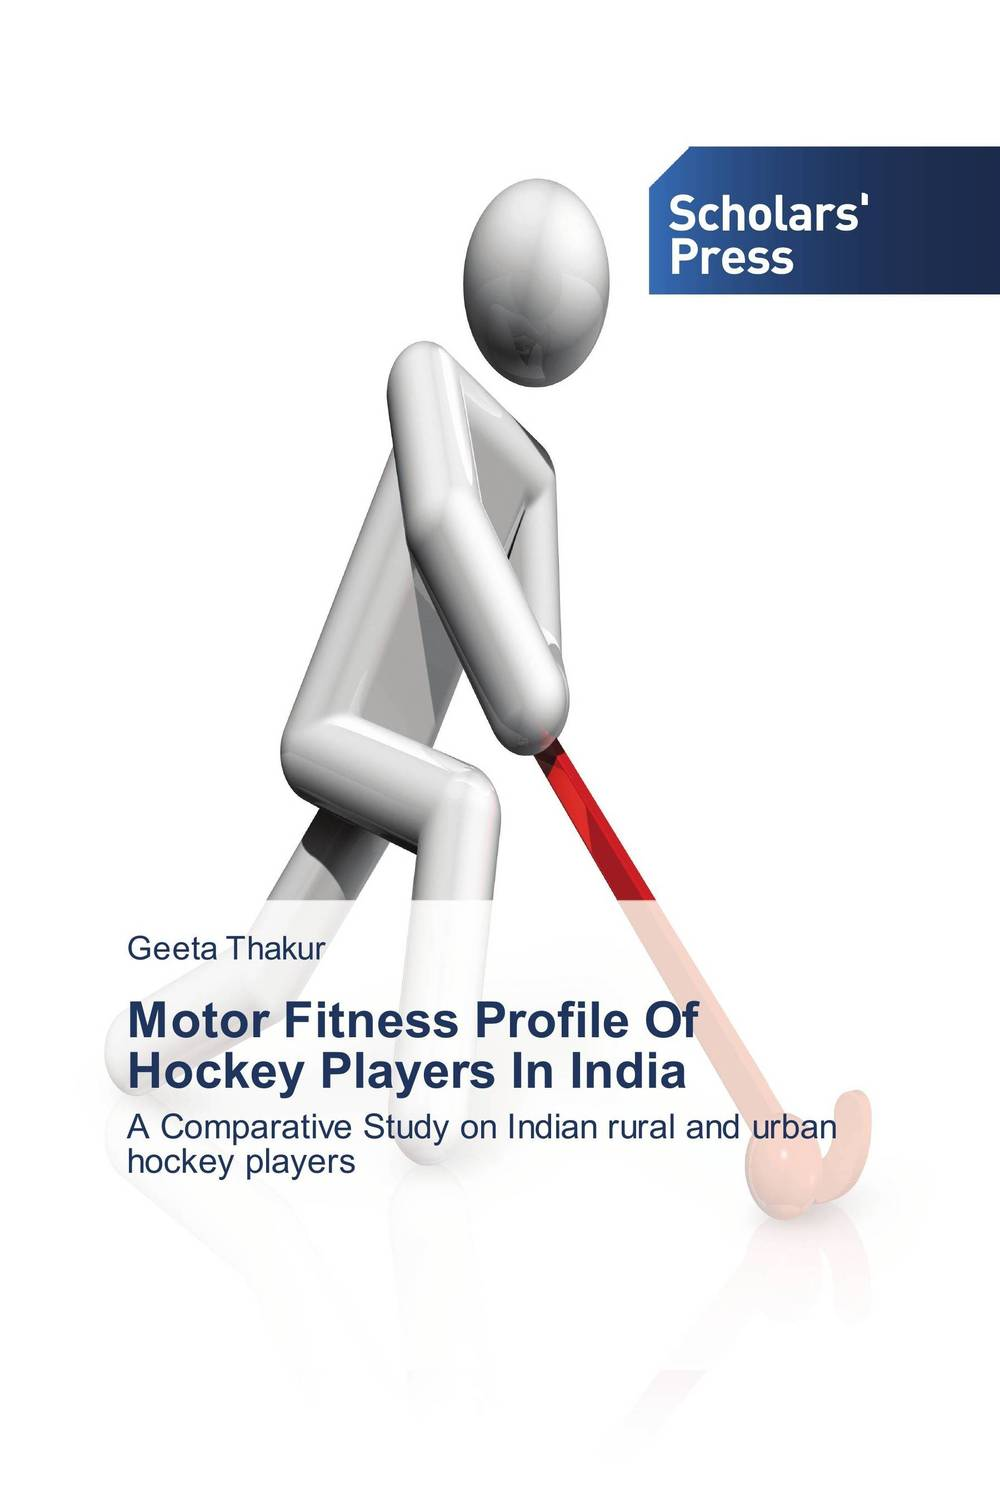 Motor Fitness Profile Of Hockey Players In India